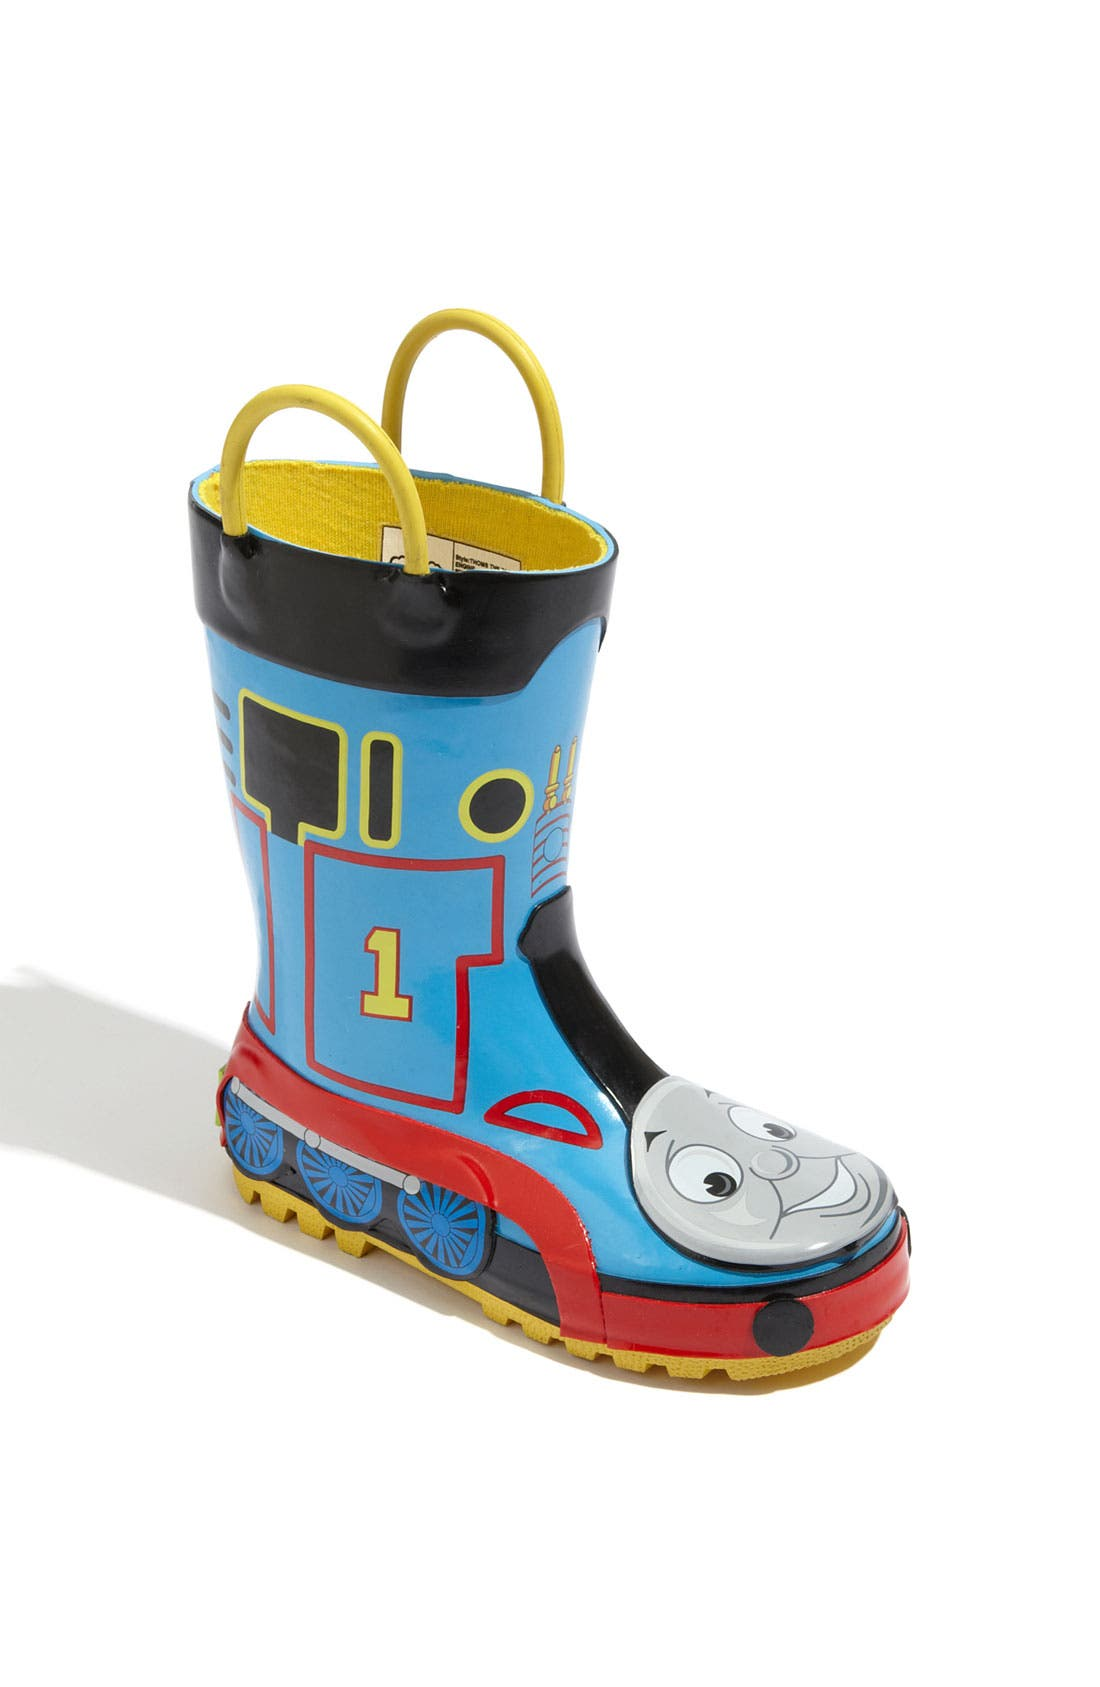 Alternate Image 1 Selected - Western Chief 'Thomas the Tank Engine®' Rain Boot (Walker, Toddler, Little Kid & Big Kid)